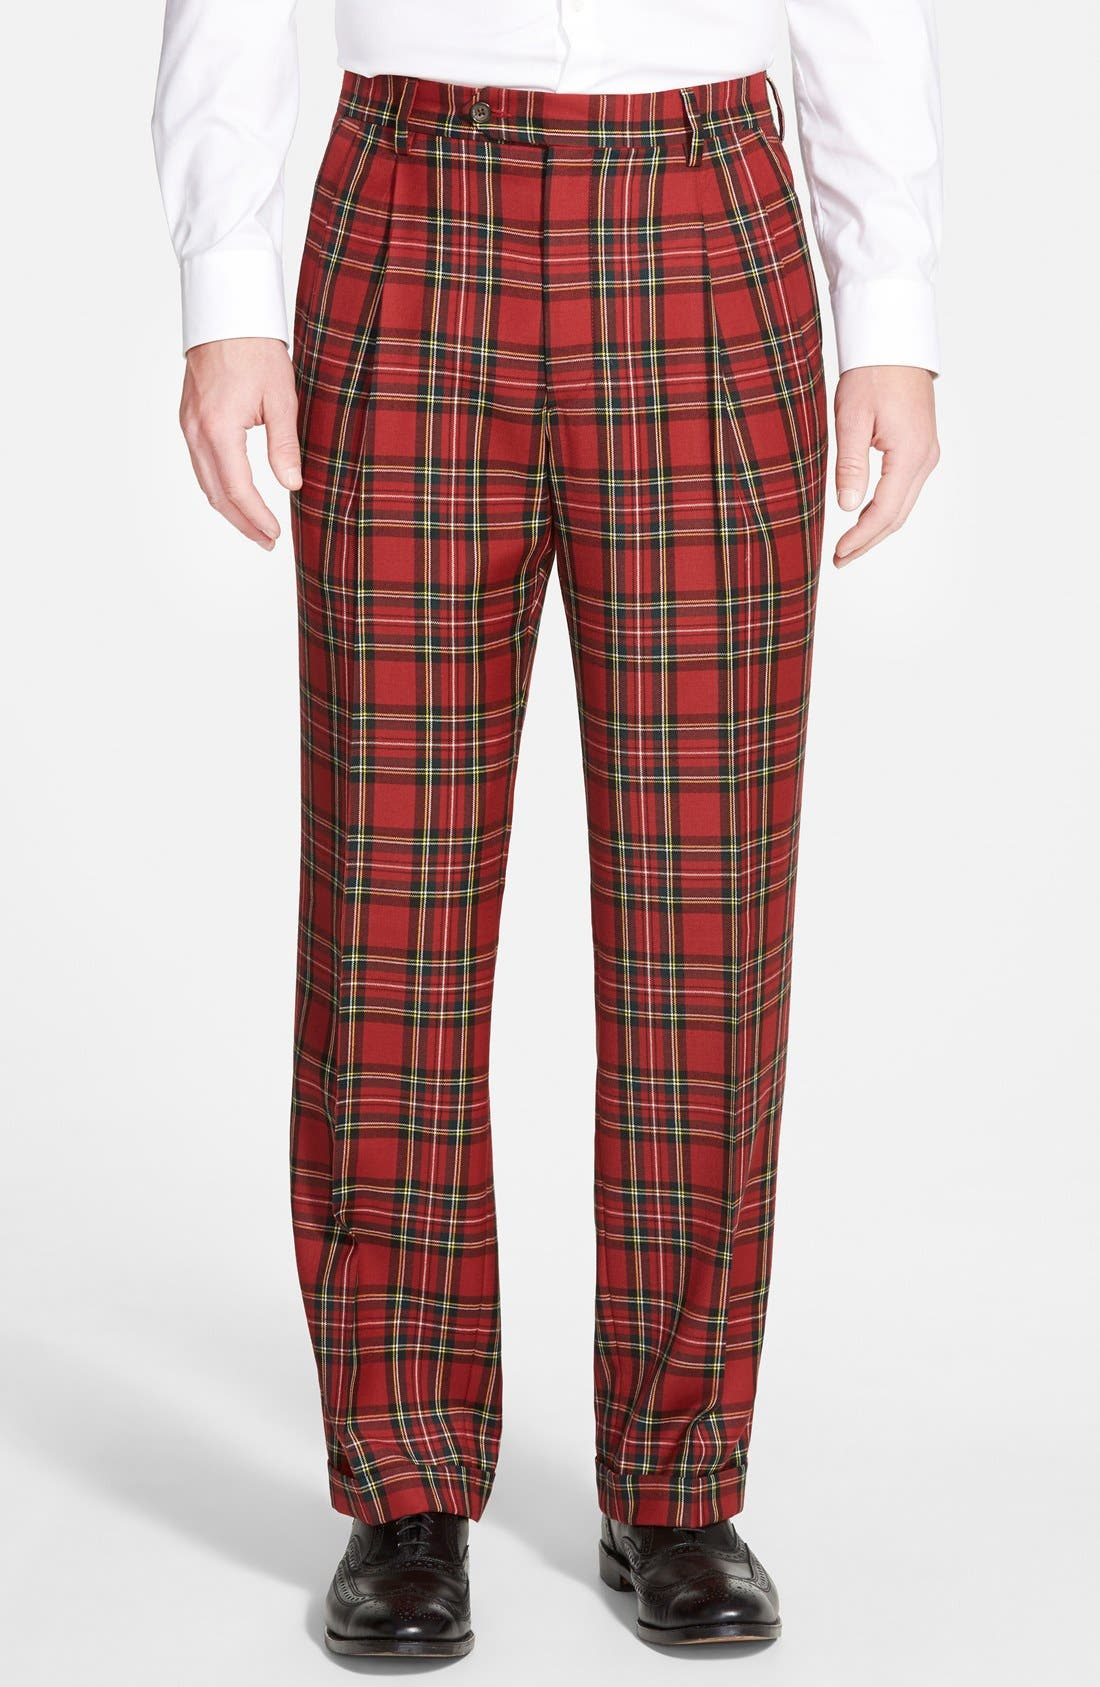 1950s Men's Pants, Trousers, Shorts | Rockabilly Jeans, Greaser Styles Mens Berle Pleated Plaid Wool Trousers Size 36 x Unhemmed - Red $175.00 AT vintagedancer.com